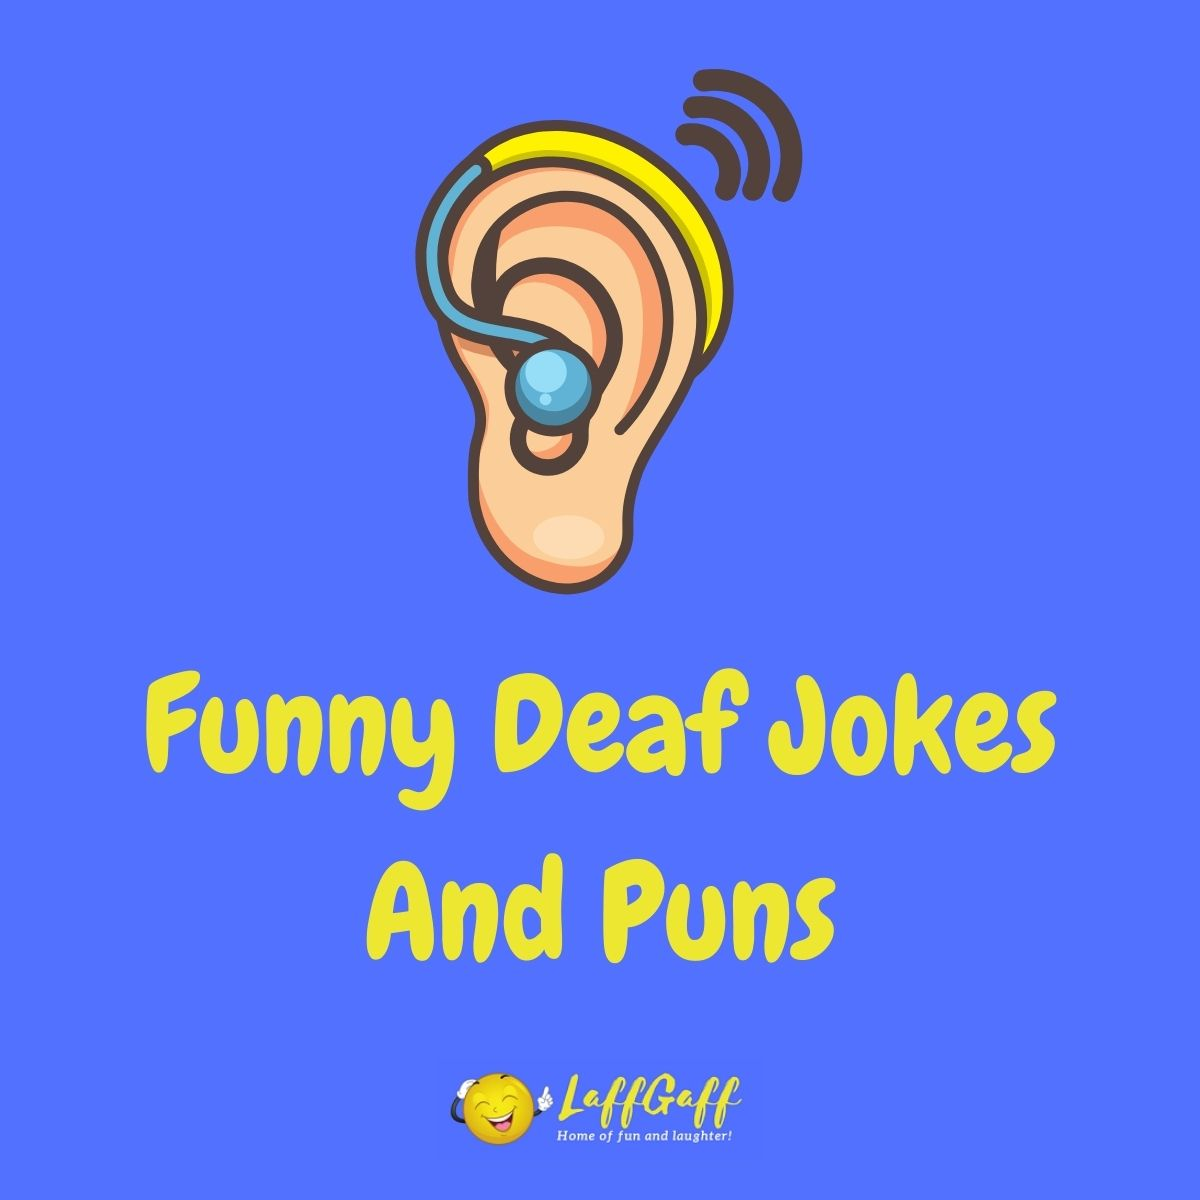 Featured image for a page of funny deaf jokes and puns.